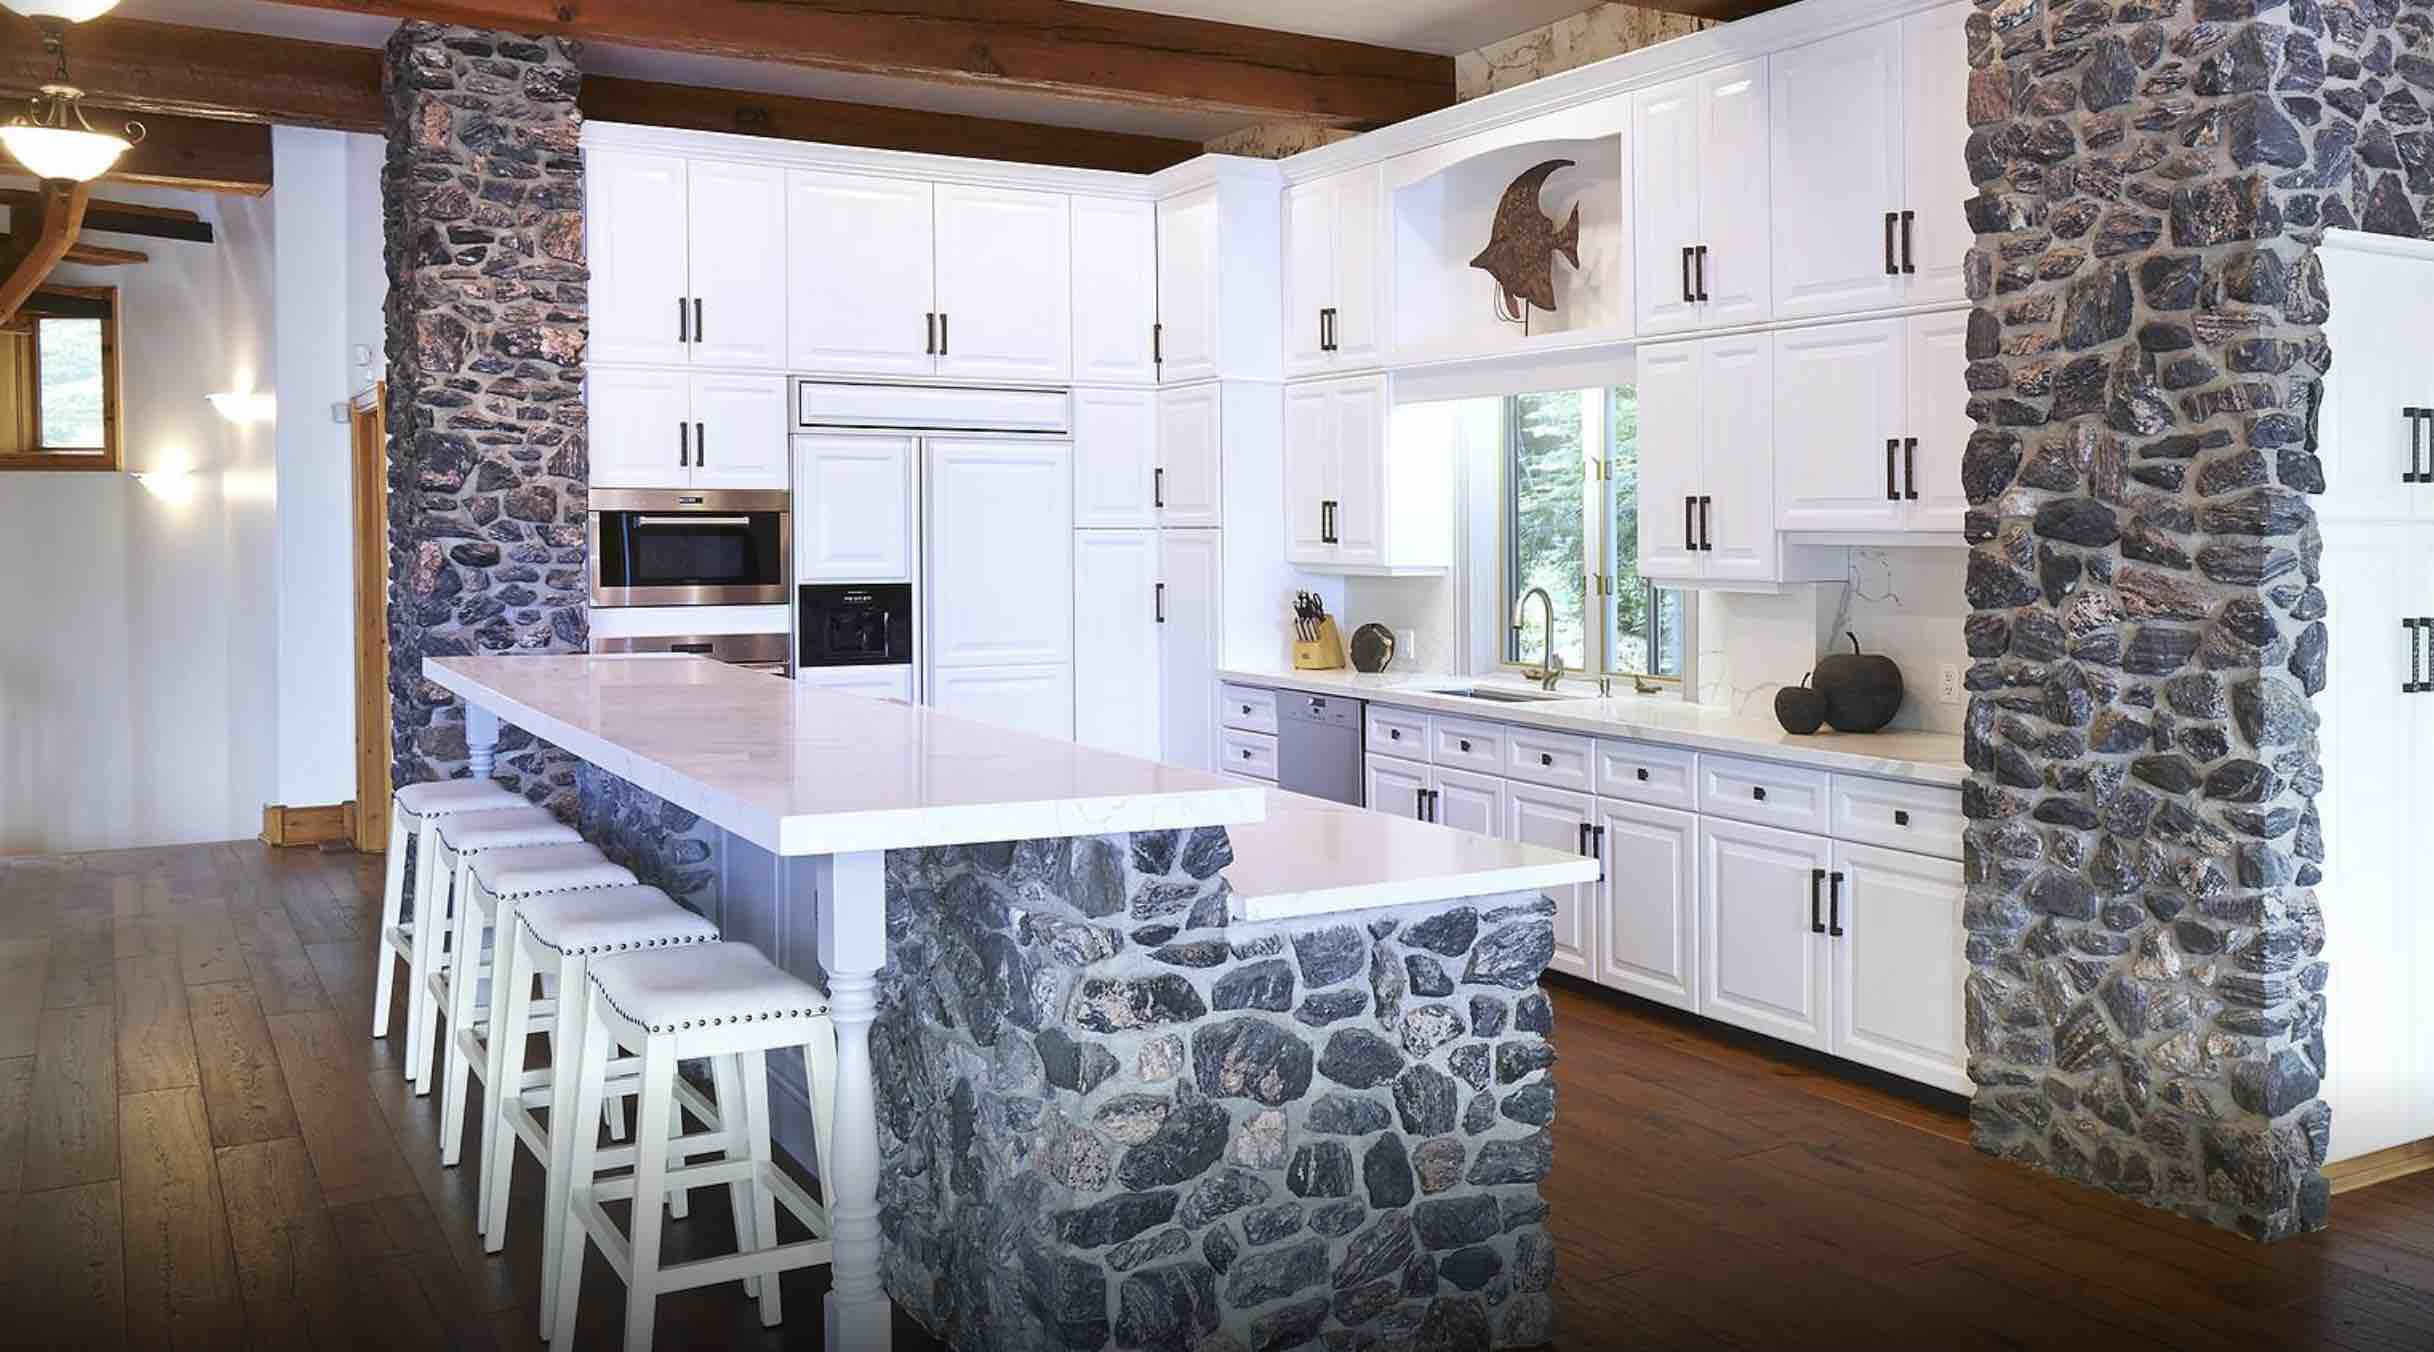 The deluxe kitchen at Sagamo Estate is made for entertaining